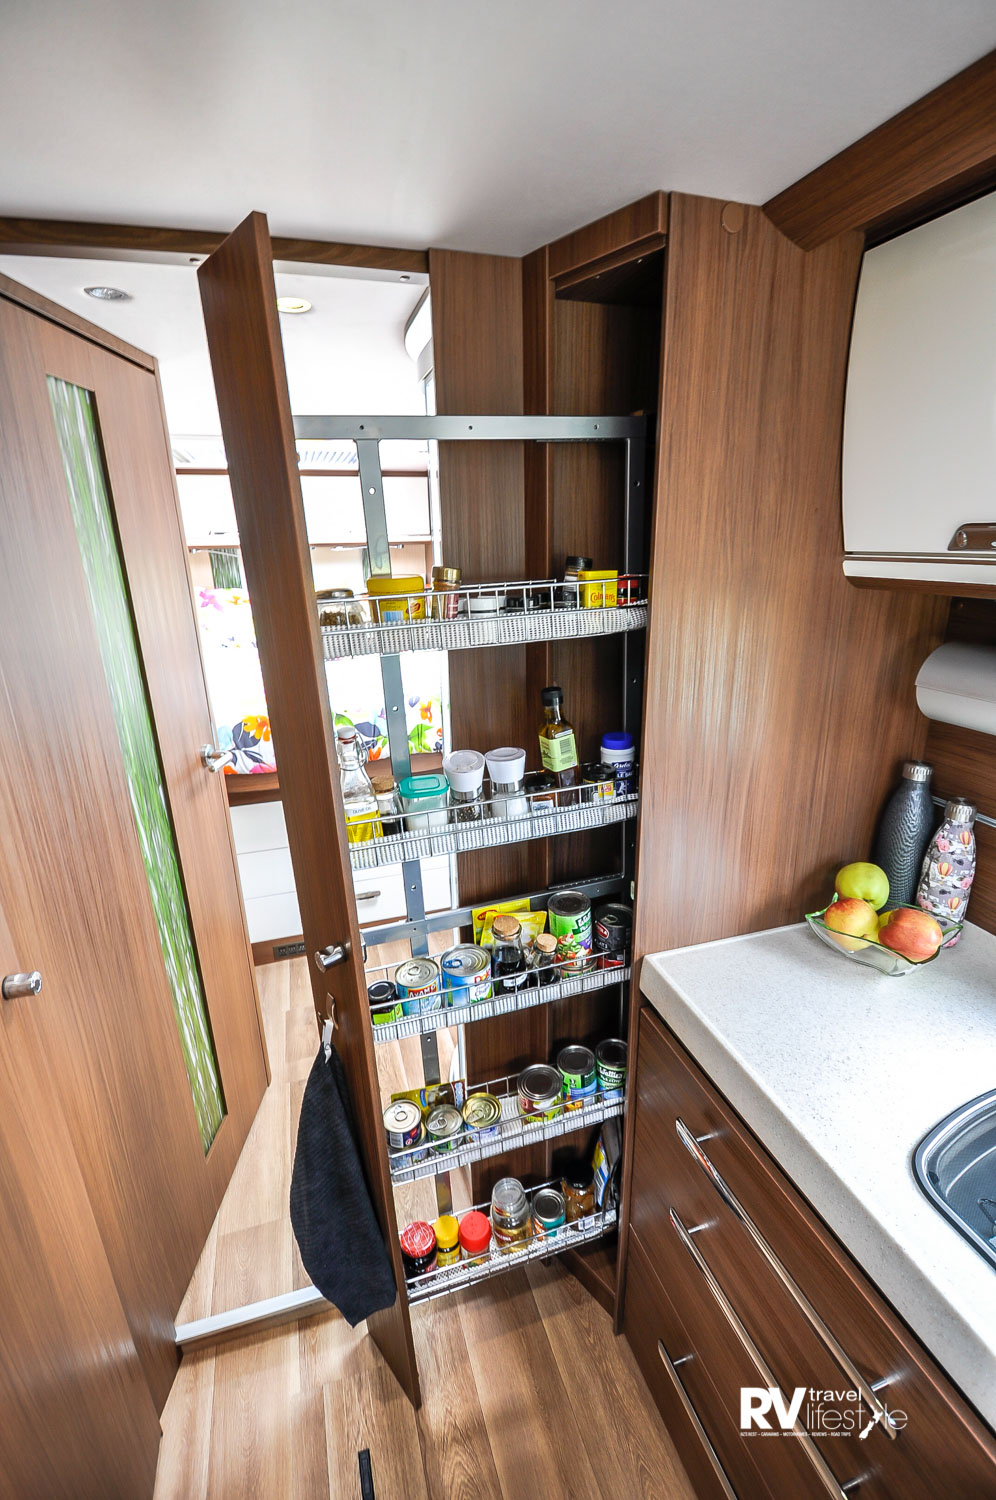 The pull-out pantry will be the envy of many